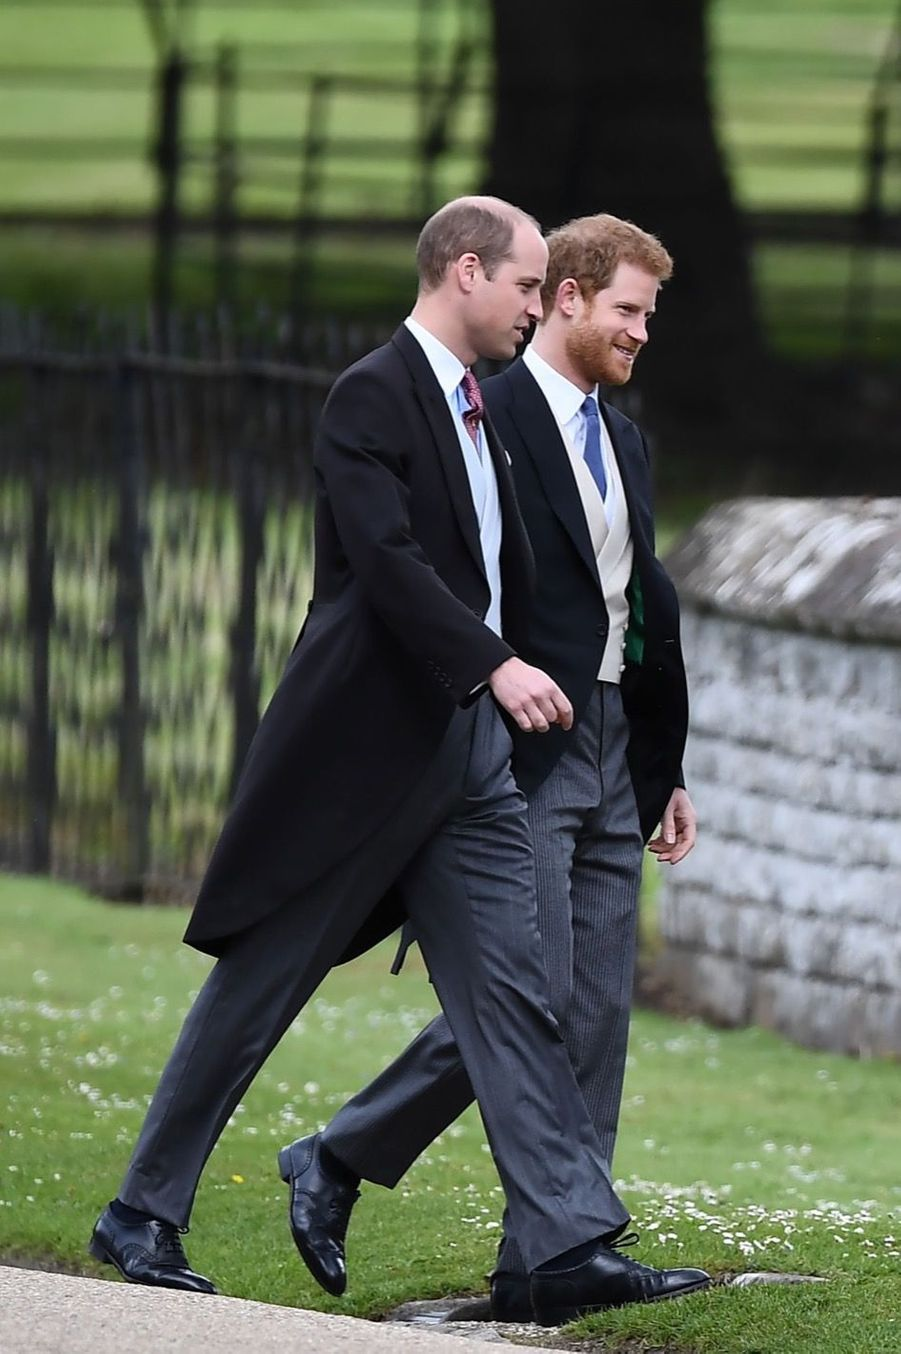 William et Harry arrivent au mariage de Pippa Middleton